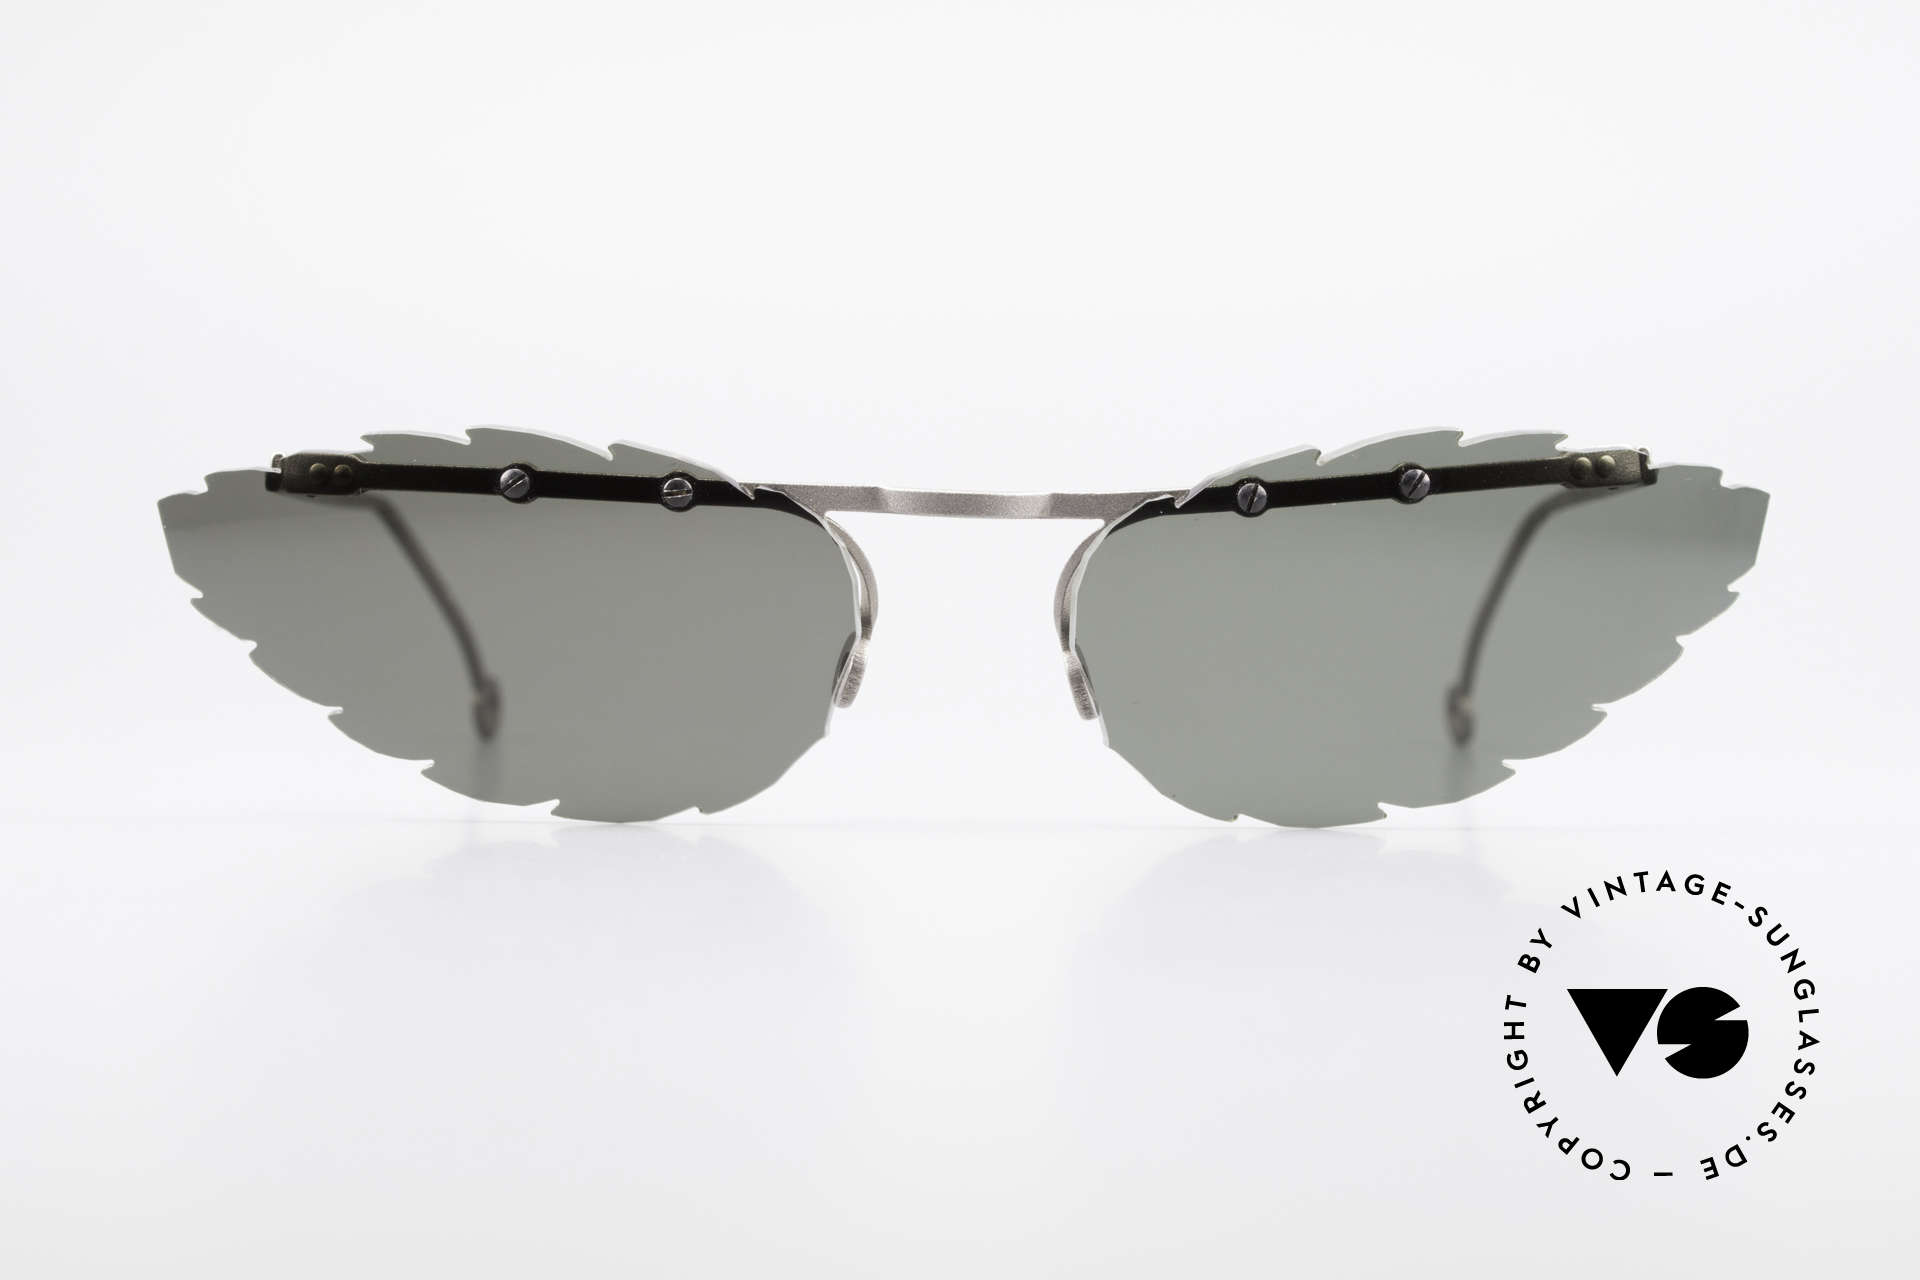 Theo Belgium Asis Lenses shaped like a leaf, founded in 1989 as 'anti mainstream' eyewear / glasses, Made for Men and Women